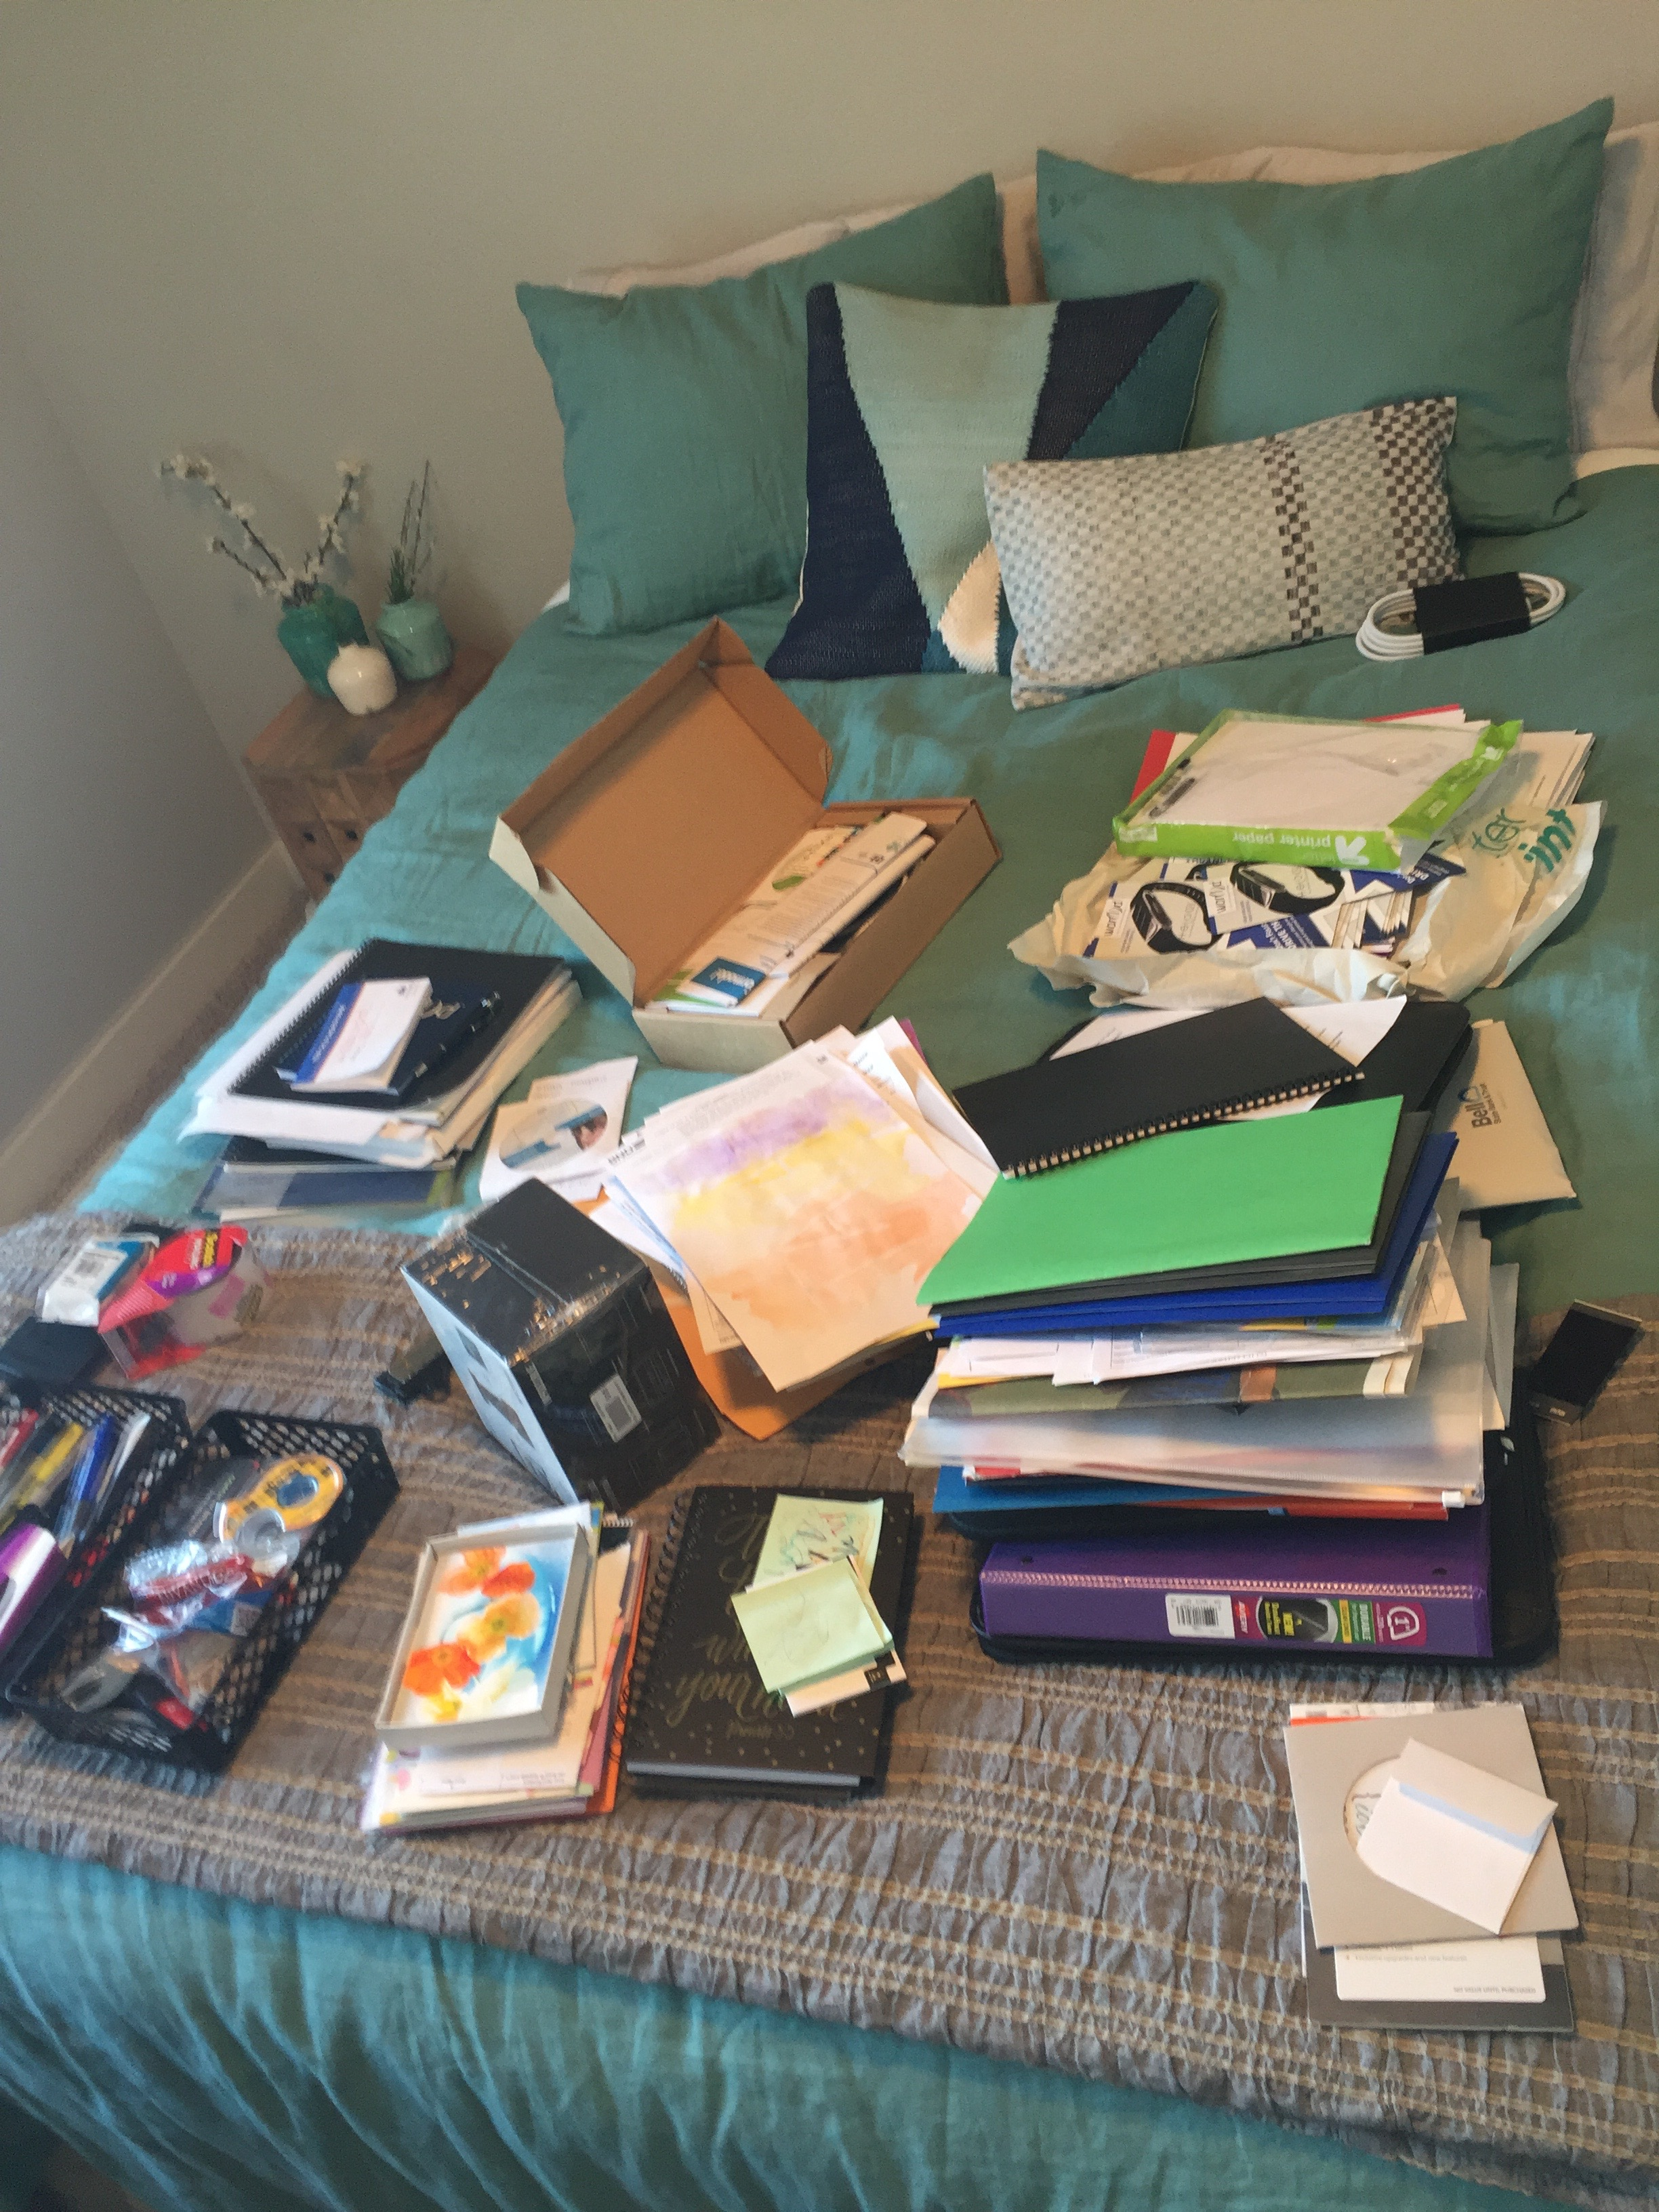 Get started by taking everything out of your desk and putting it in one area. (The top of a bed, or on the floor, work great!) Pick everything up and ask yourself if the item sparks joy or is useful.